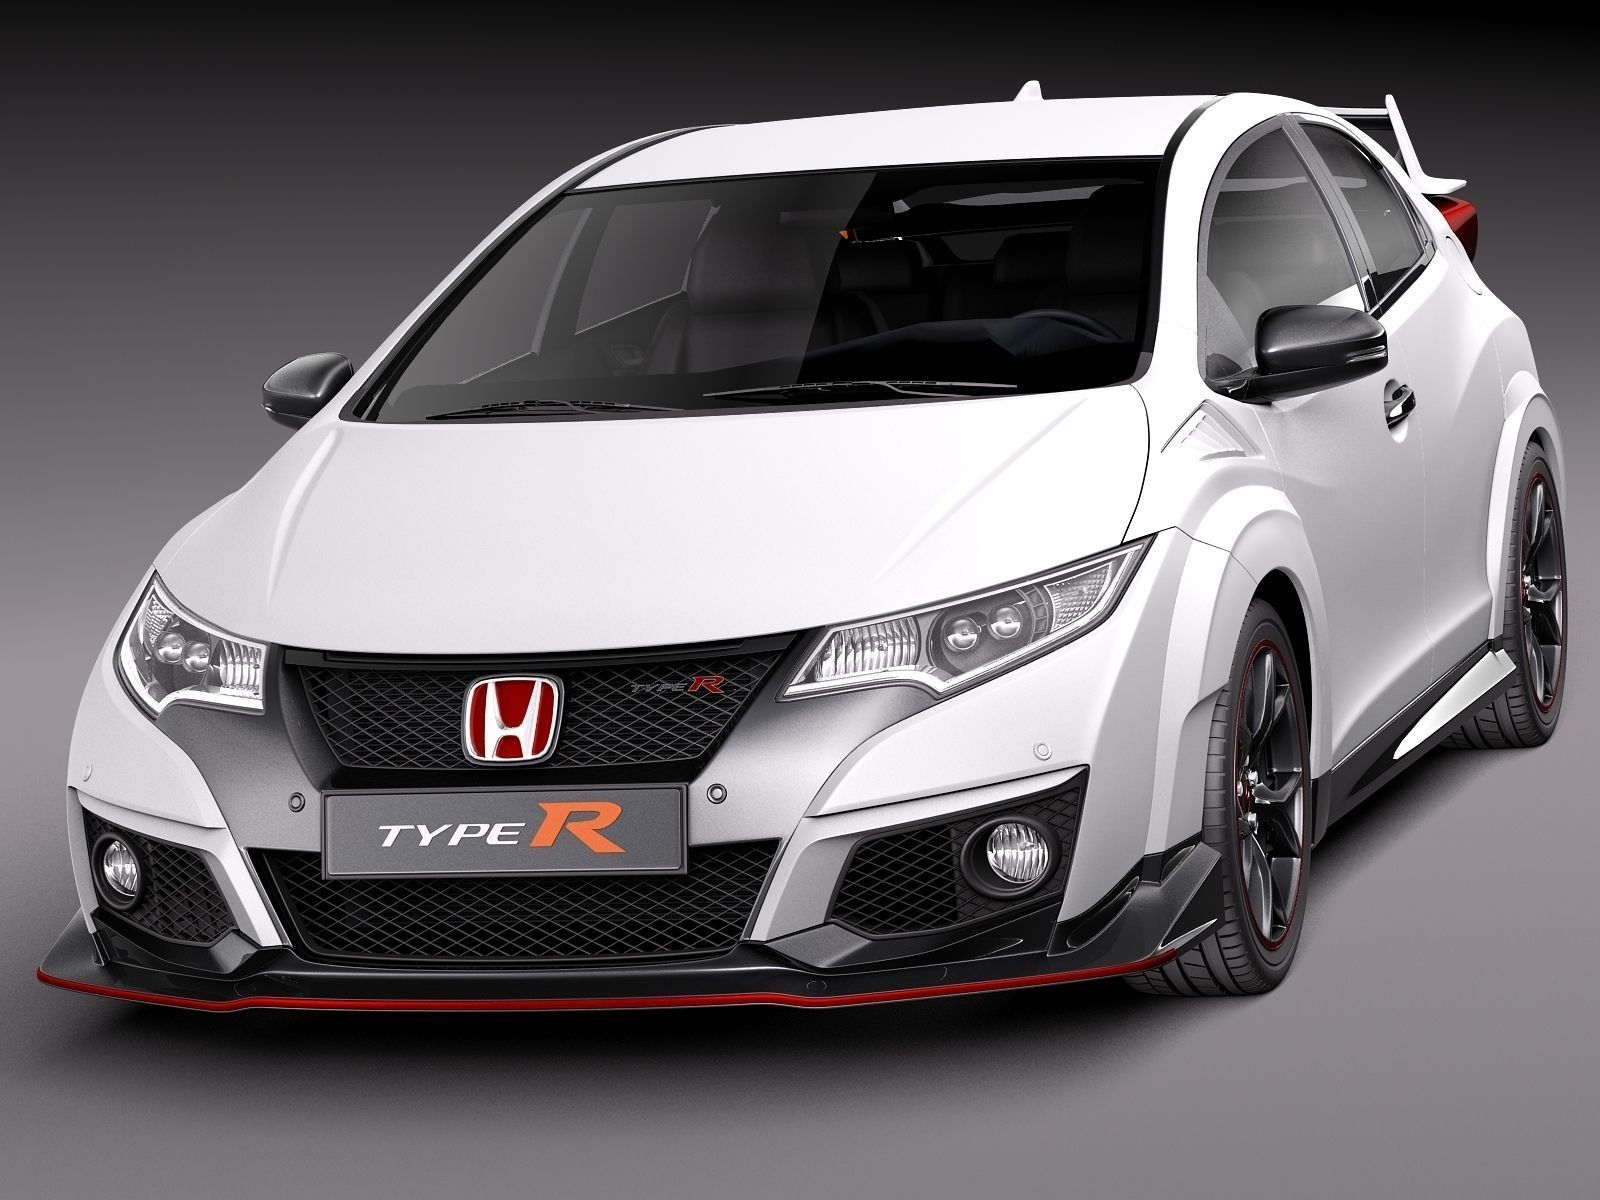 honda civic type r 2016 3d model max obj 3ds fbx c4d. Black Bedroom Furniture Sets. Home Design Ideas